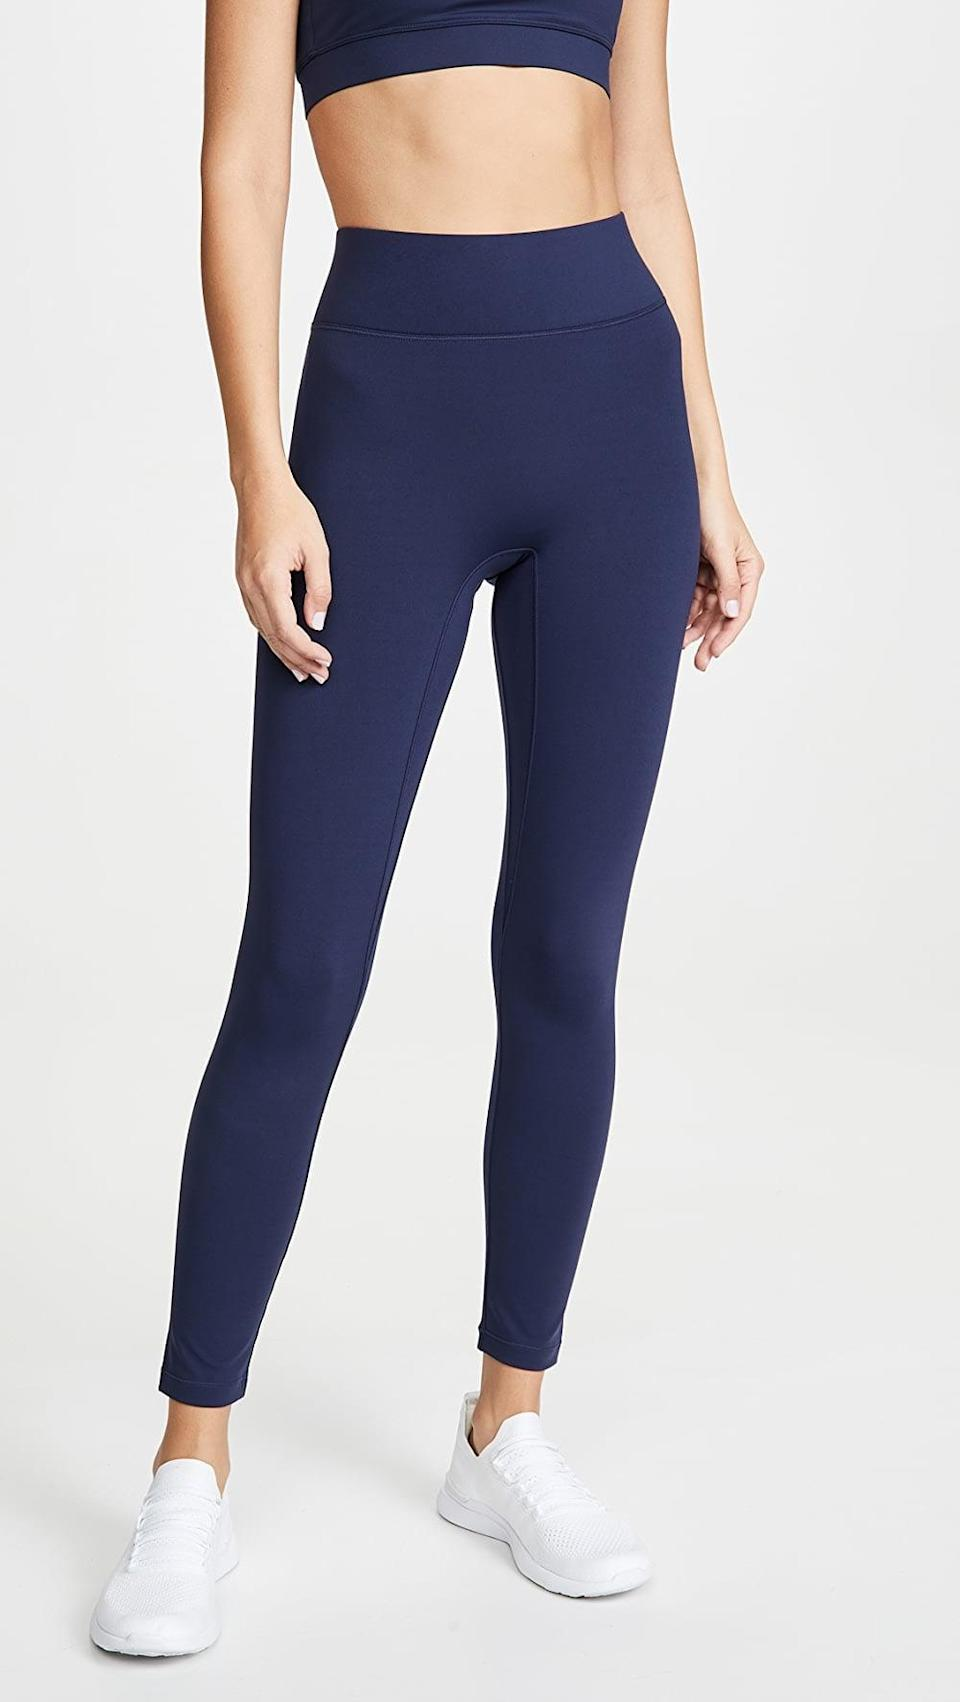 <p>These <span>All Access Center Stage Leggings</span> ($98) are so flattering.</p>